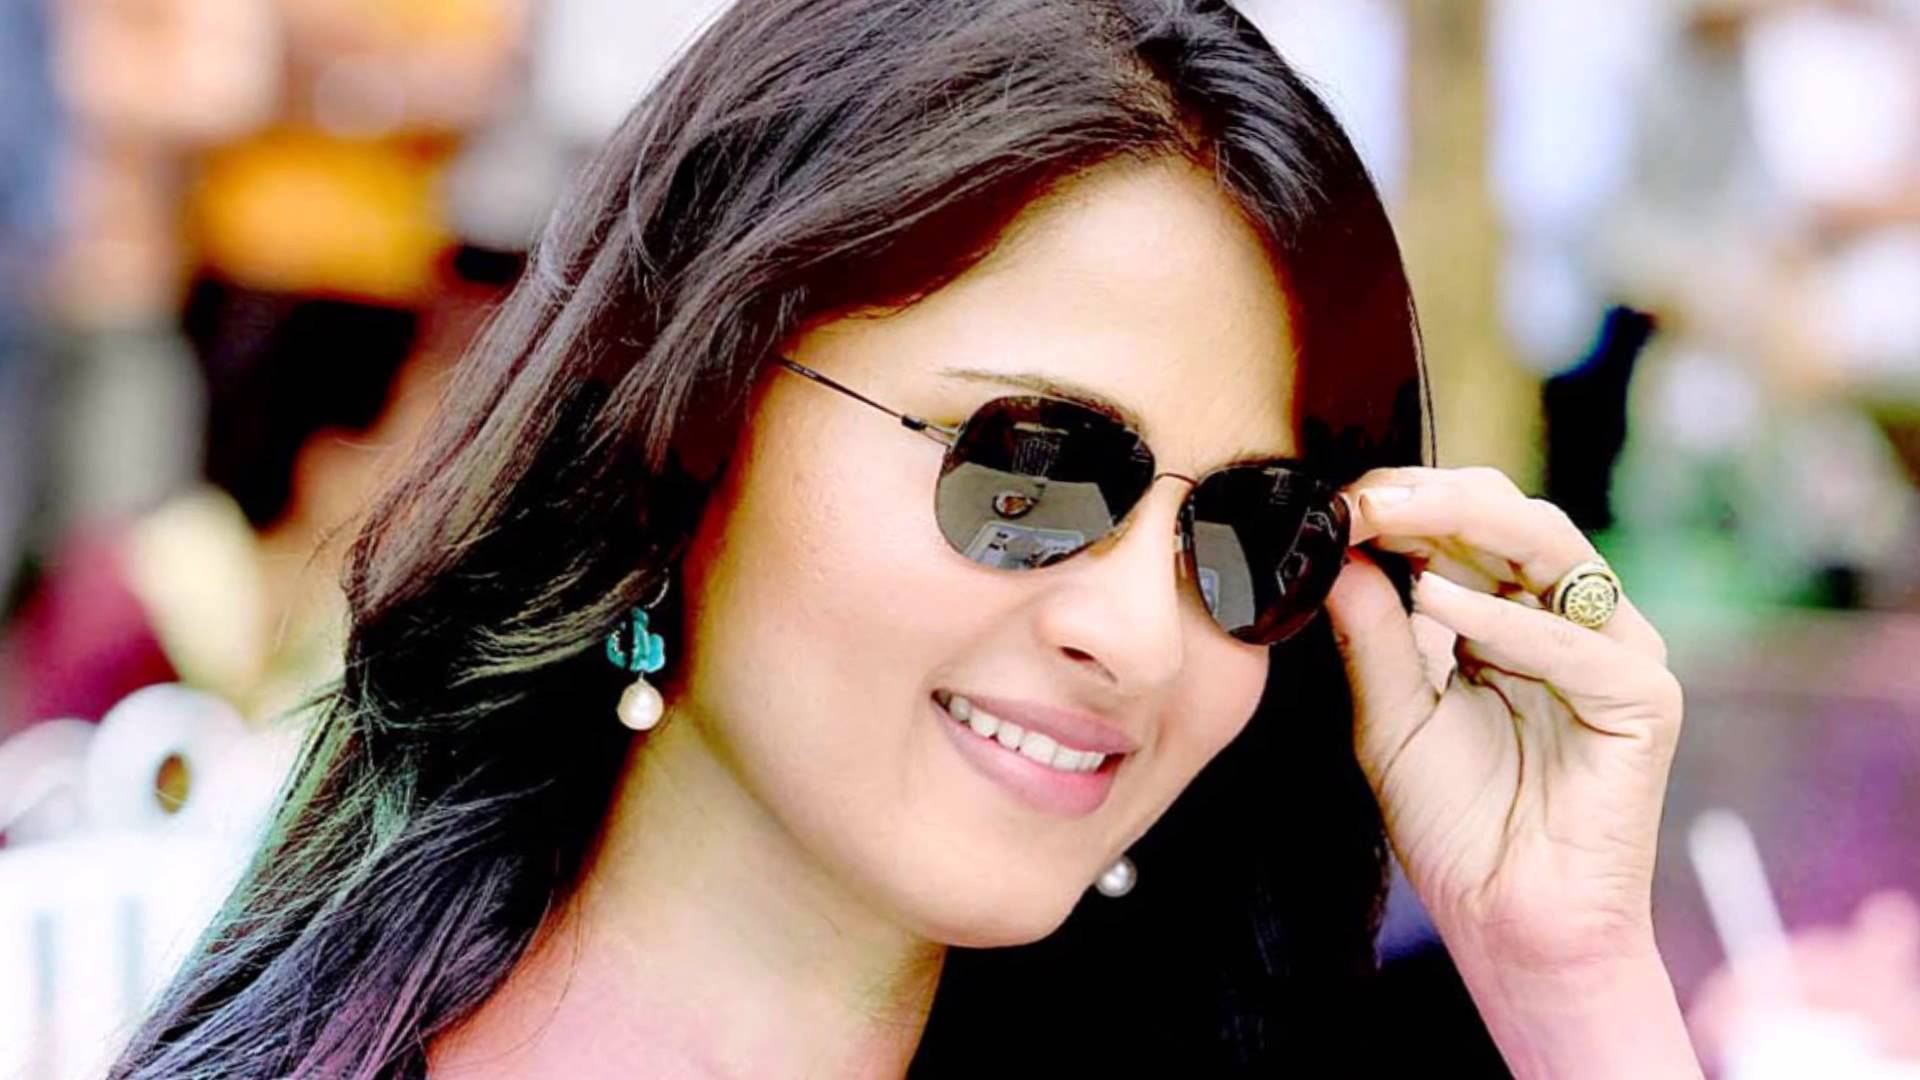 fantastic anushka shetty style desktop mobile free hd background pictures